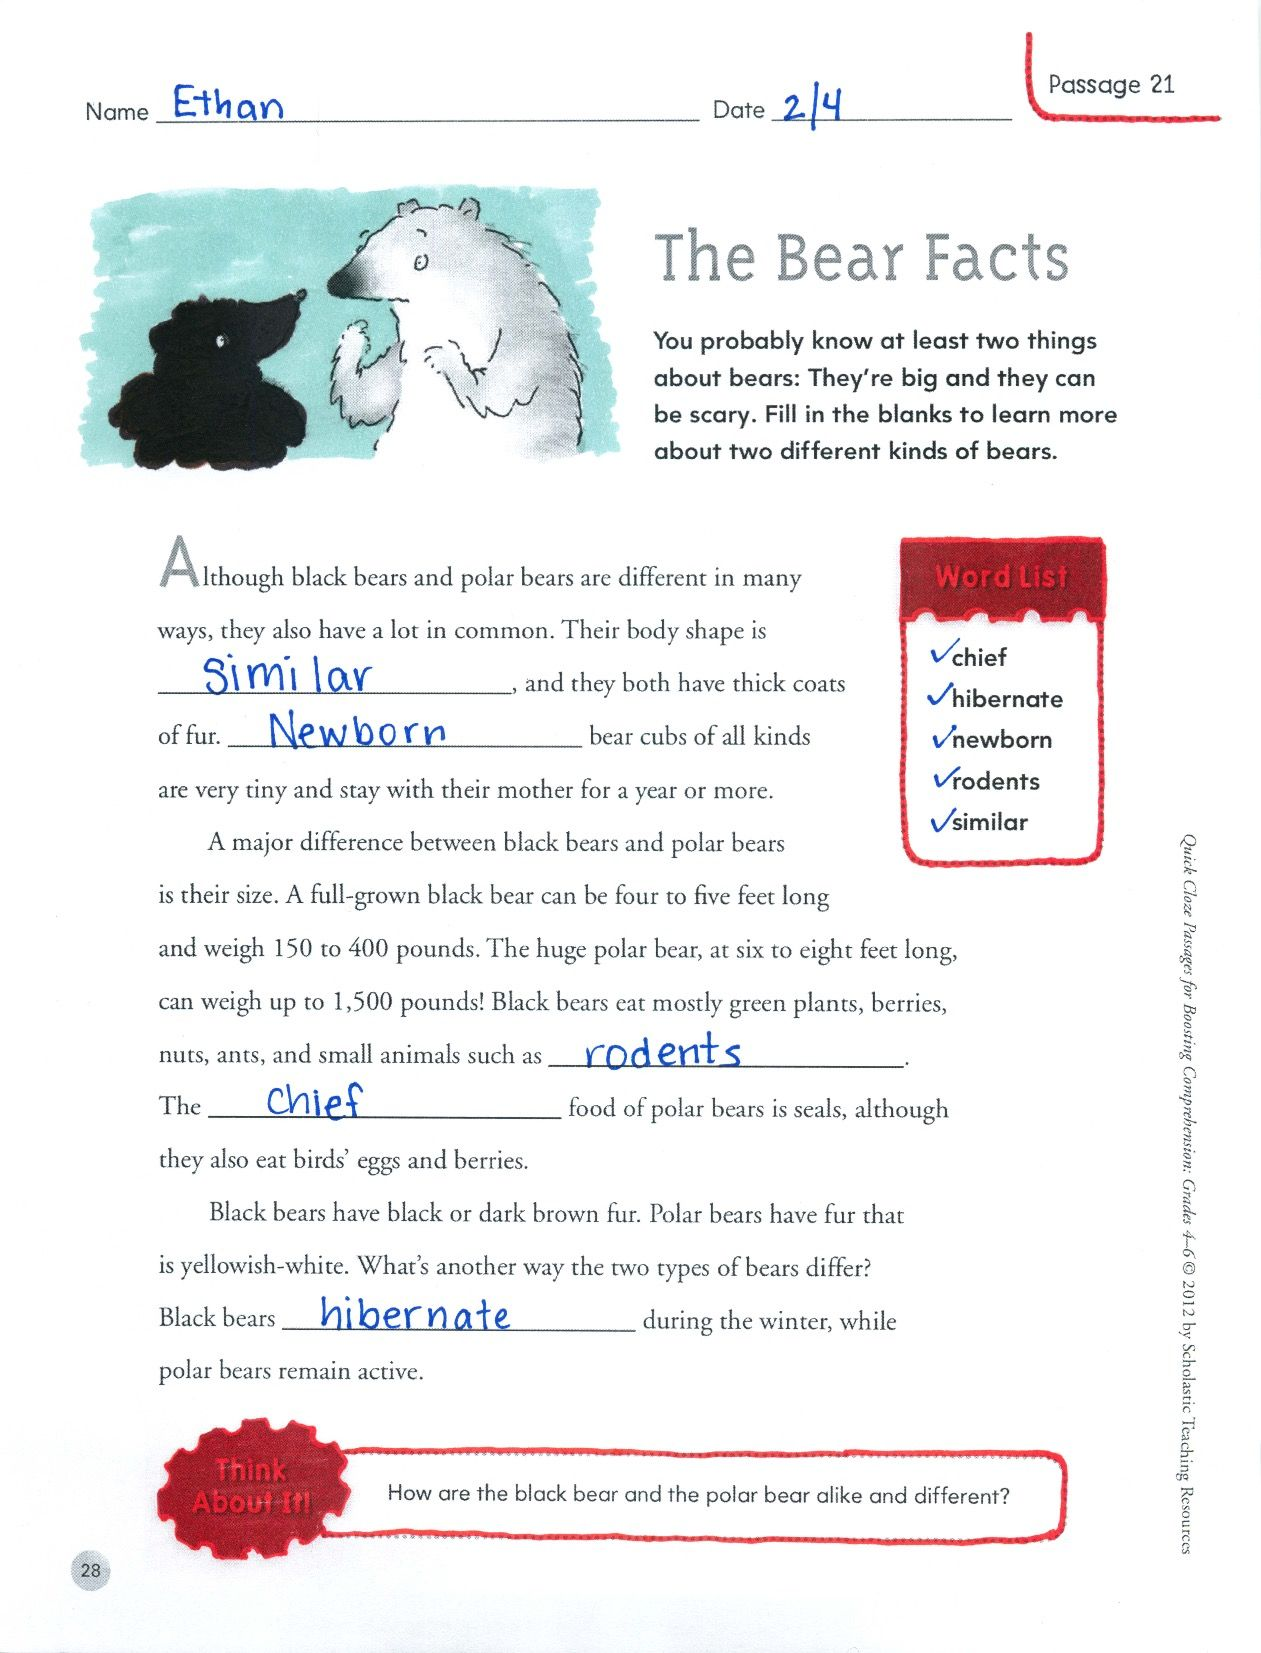 You Probably Know At Least Two Things About Bears They Re Big And They Can Be Scary Students Read The Passage And Use Cloze Passages Student Reading Passage [ 1653 x 1261 Pixel ]